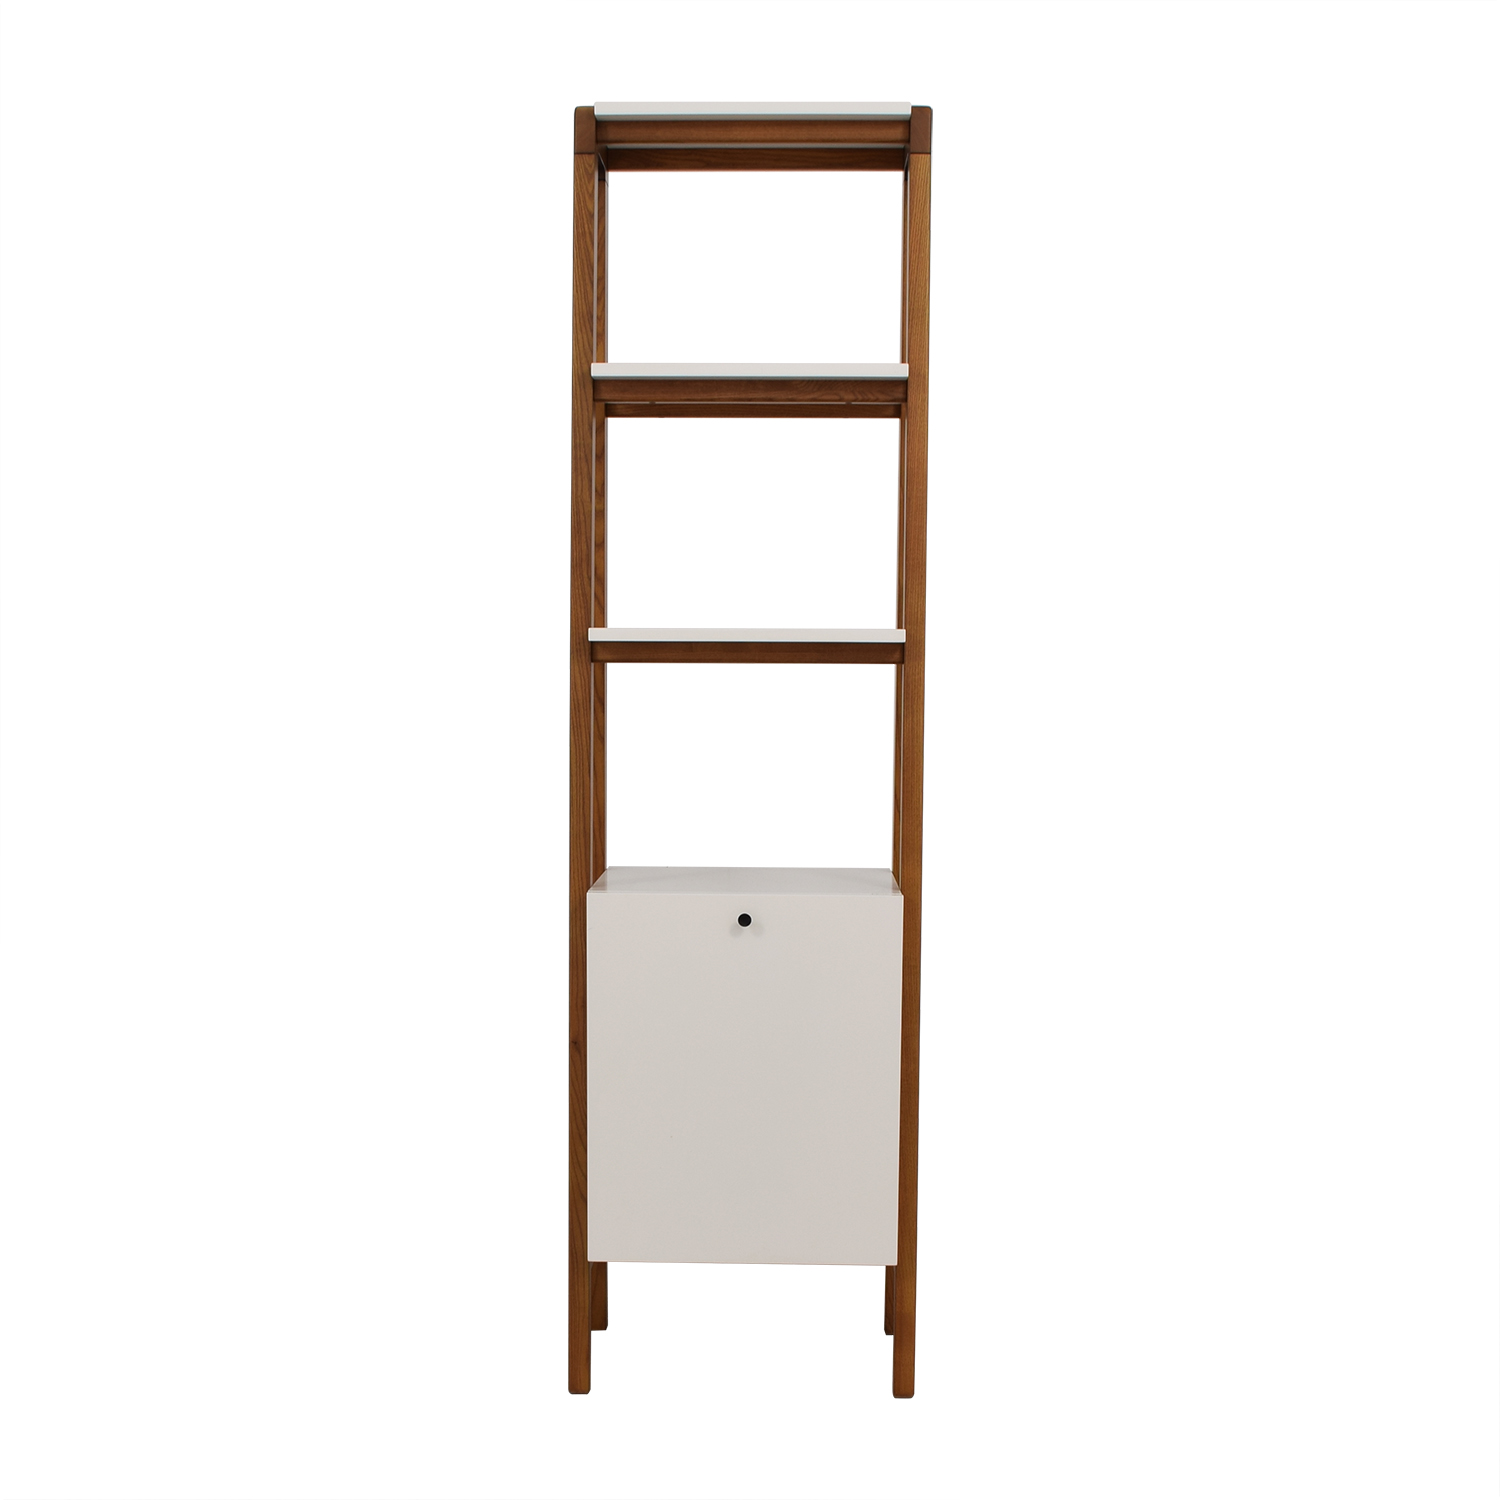 West Elm West Elm Modern Narrow Tower Storage